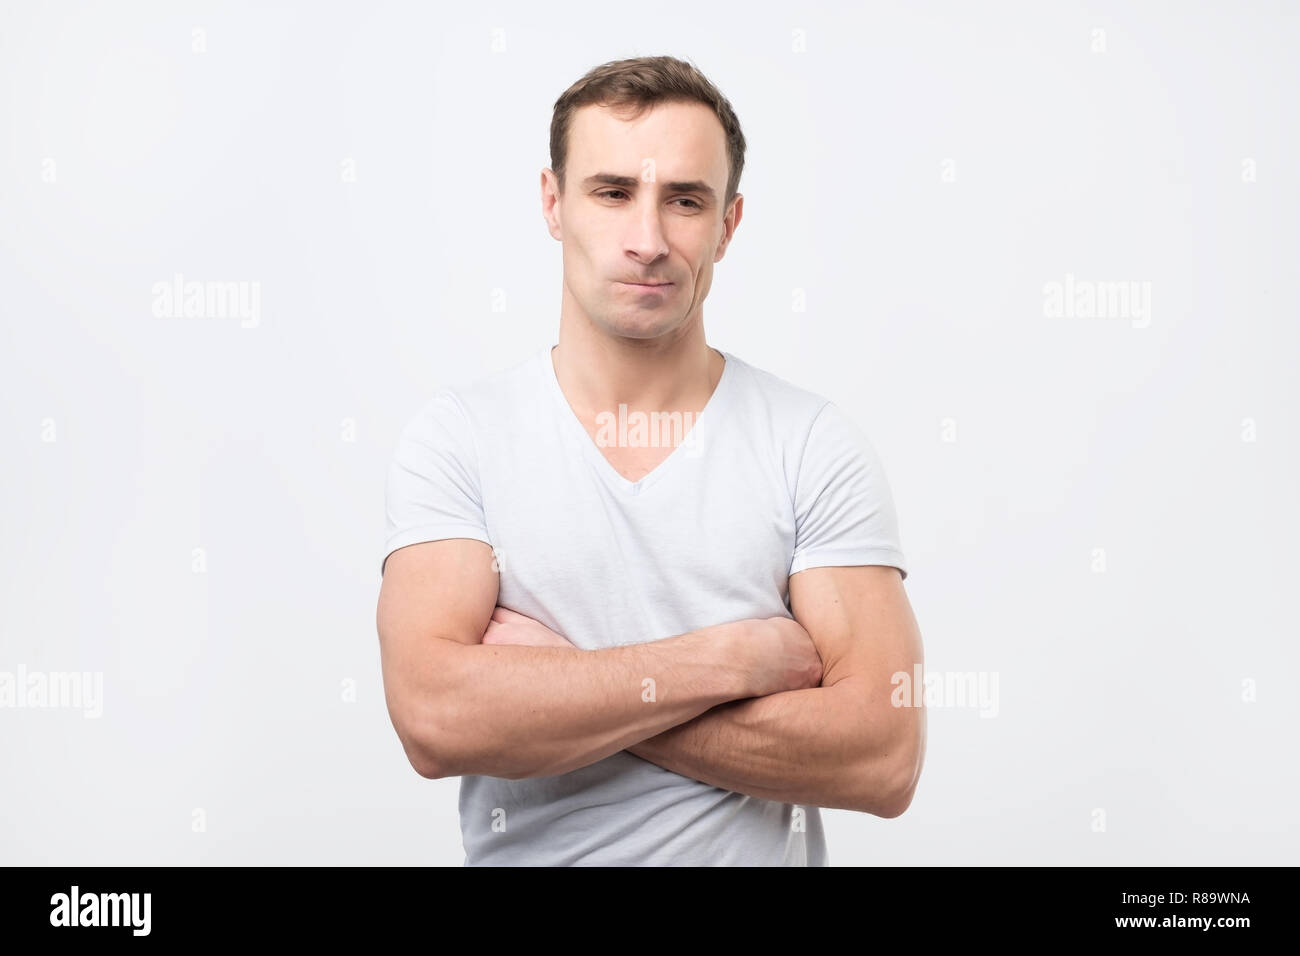 Sad italian guy in white t-shirt thoughtfully looking aside - Stock Image